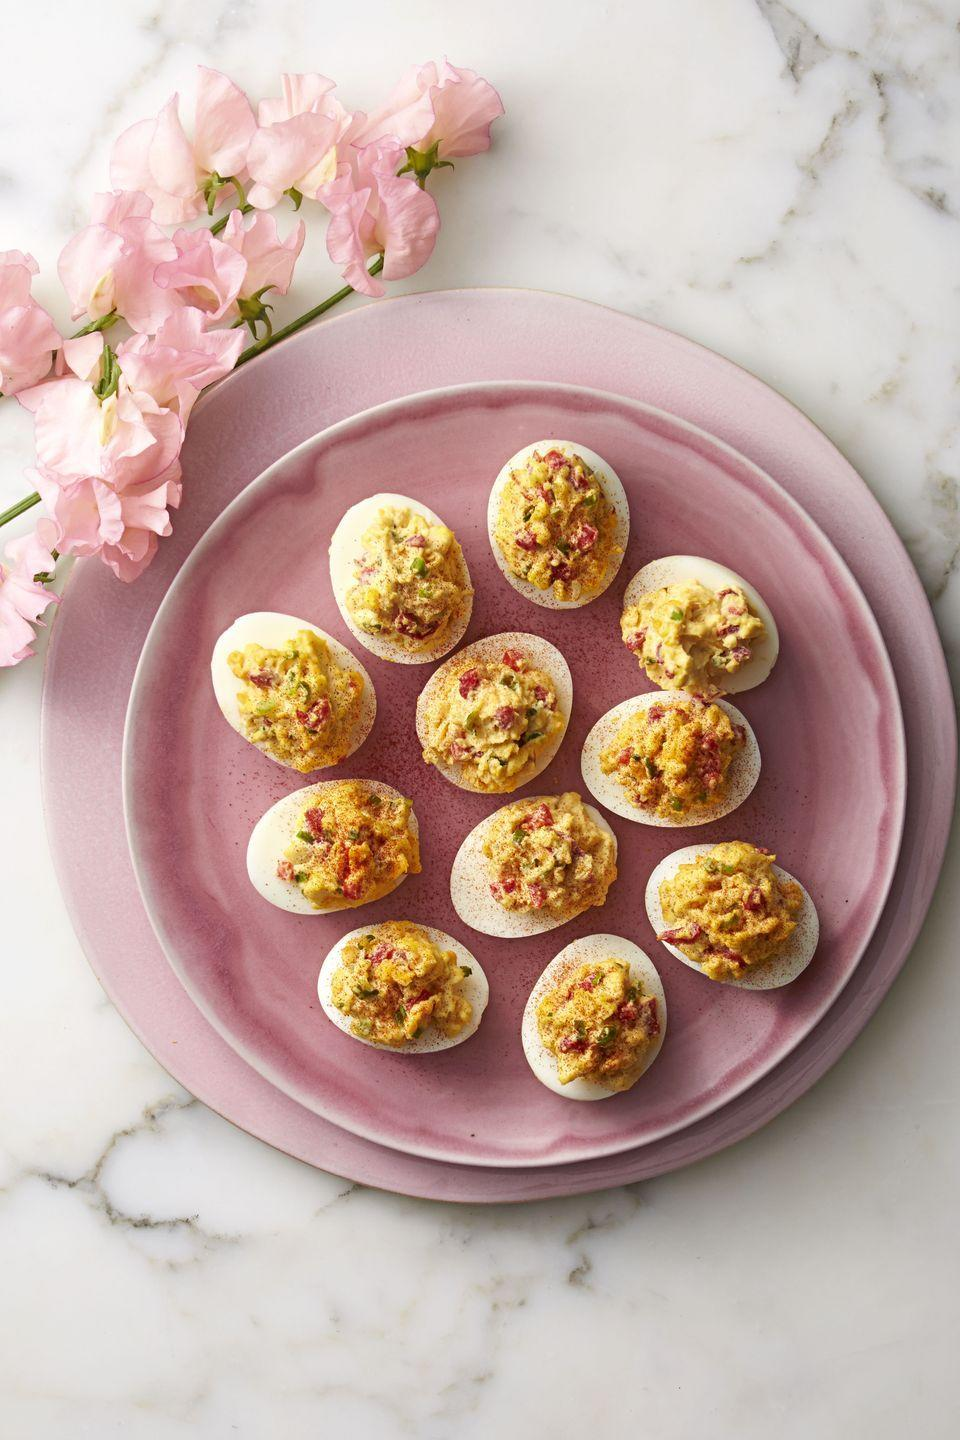 "<p>Sometimes you need a Southern-inspired egg appetizer before your eggs. </p><p><em><em><a href=""https://www.goodhousekeeping.com/food-recipes/a37454/pimiento-cheese-deviled-eggs-recipe/"" rel=""nofollow noopener"" target=""_blank"" data-ylk=""slk:Get the recipe for Pimiento-Cheese Deviled Eggs »"" class=""link rapid-noclick-resp"">Get the recipe for Pimiento-Cheese Deviled Eggs »</a></em> </em> </p>"